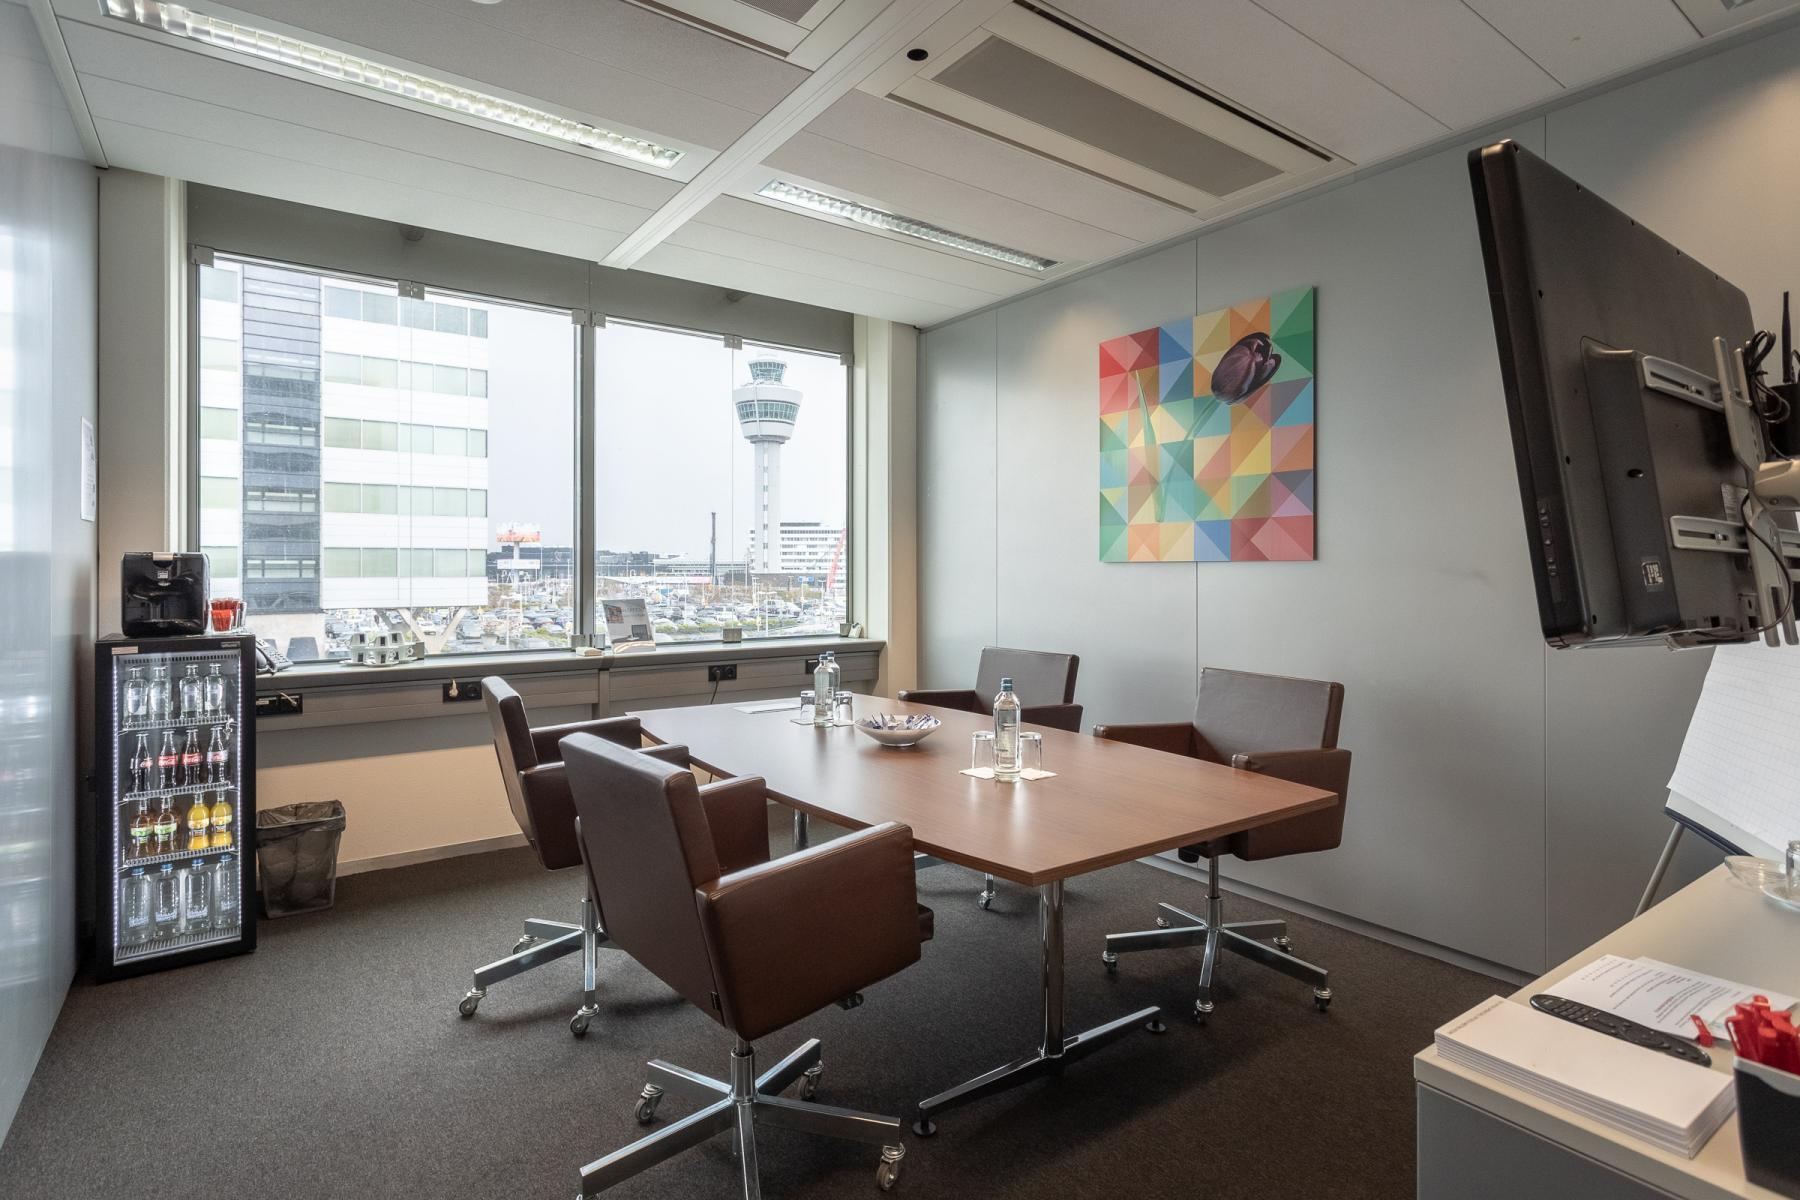 Amsterdam Airport Schiphol offices furnitured